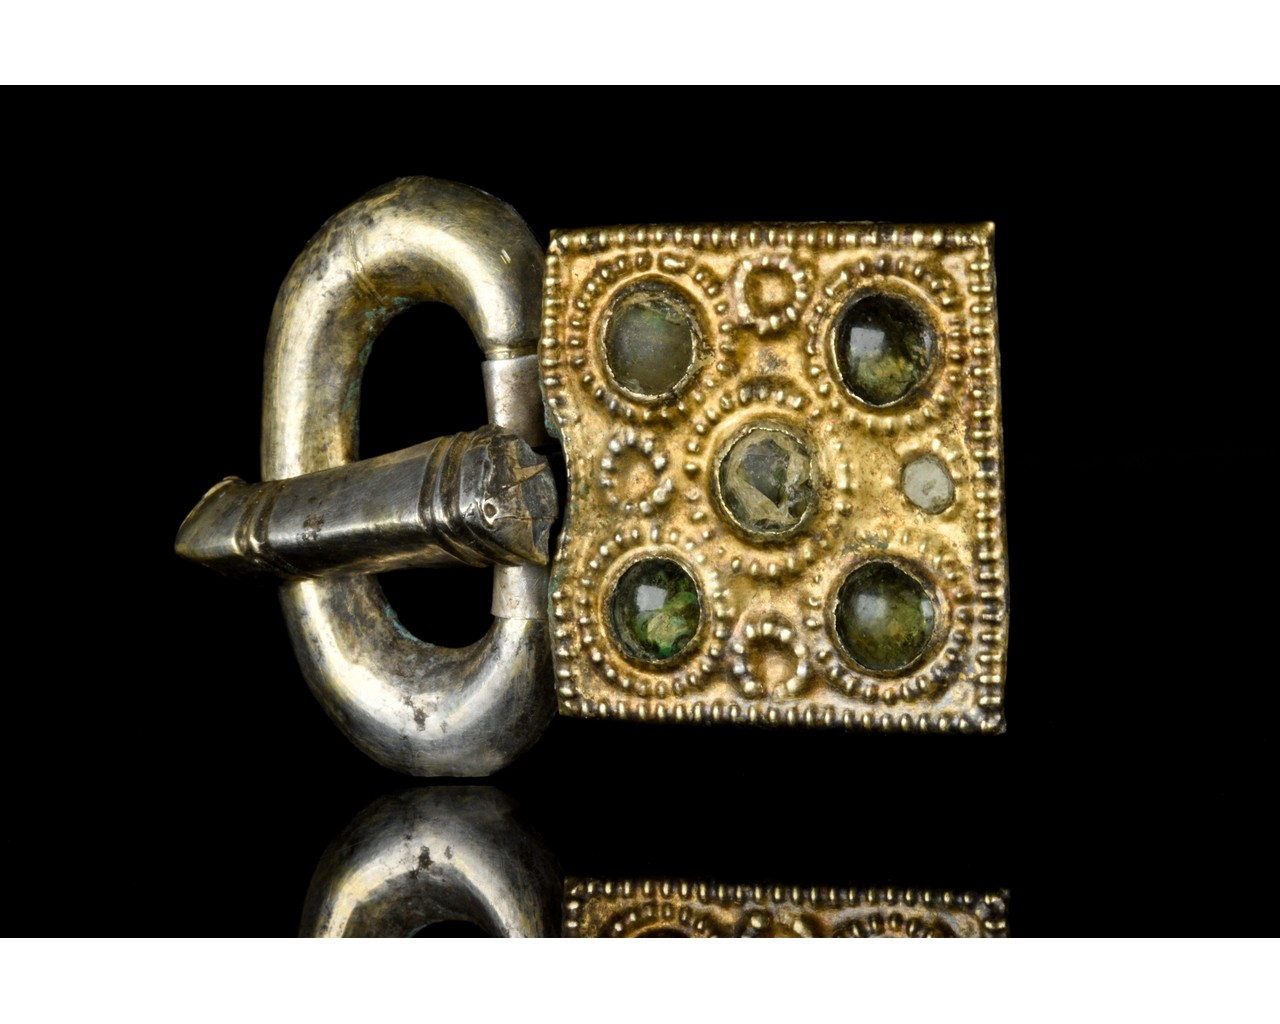 MEDIEVAL MEROVINGIAN SILVER BUCKLE WITH GEMS - Image 2 of 6